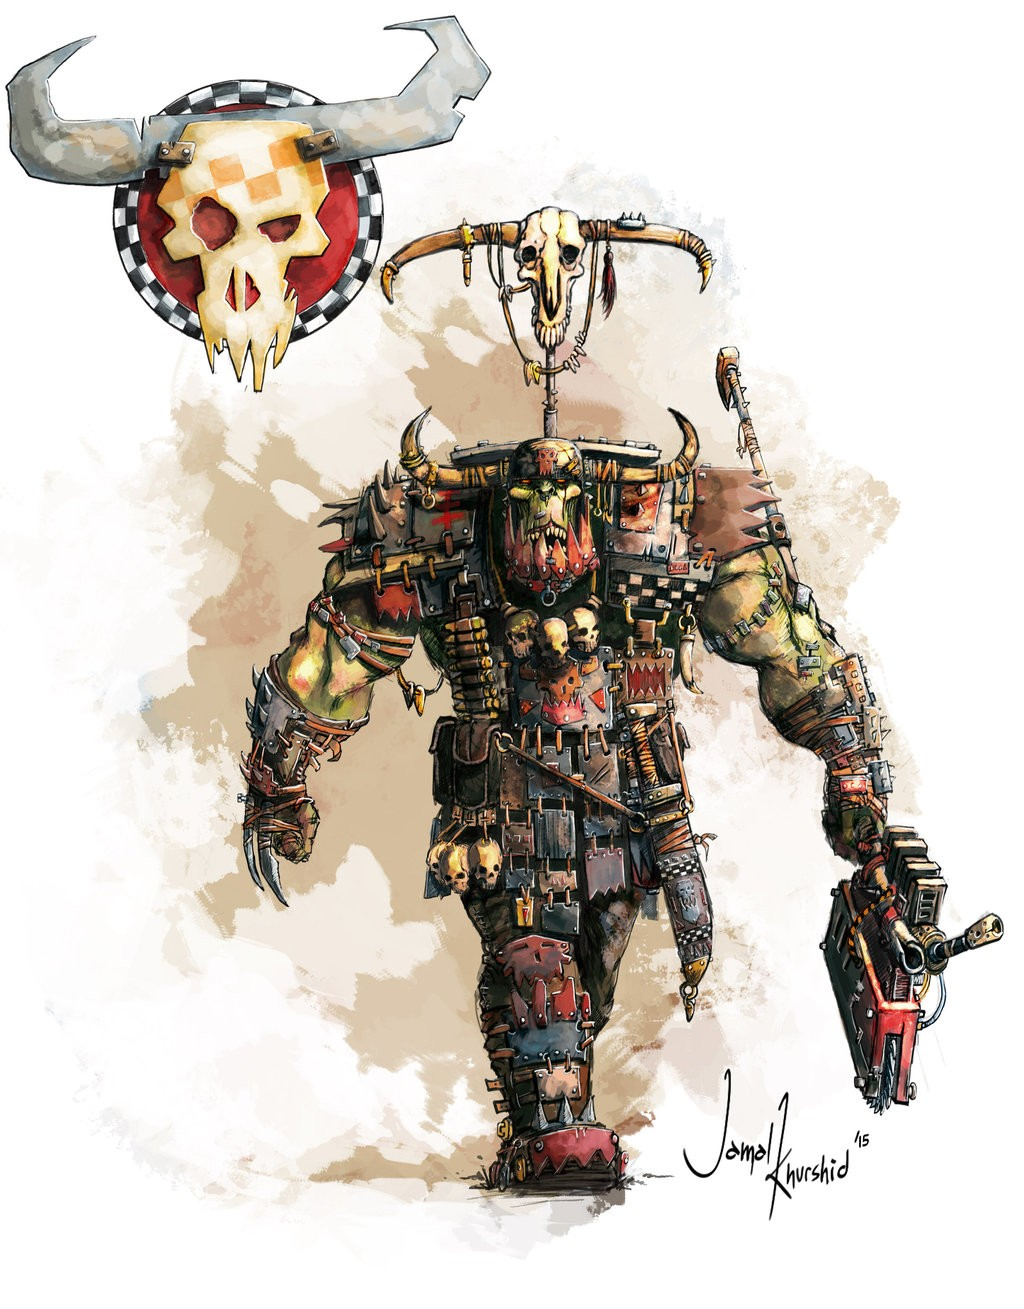 [W40K] Collection d'images : les Xenos - Page 6 E46daf10